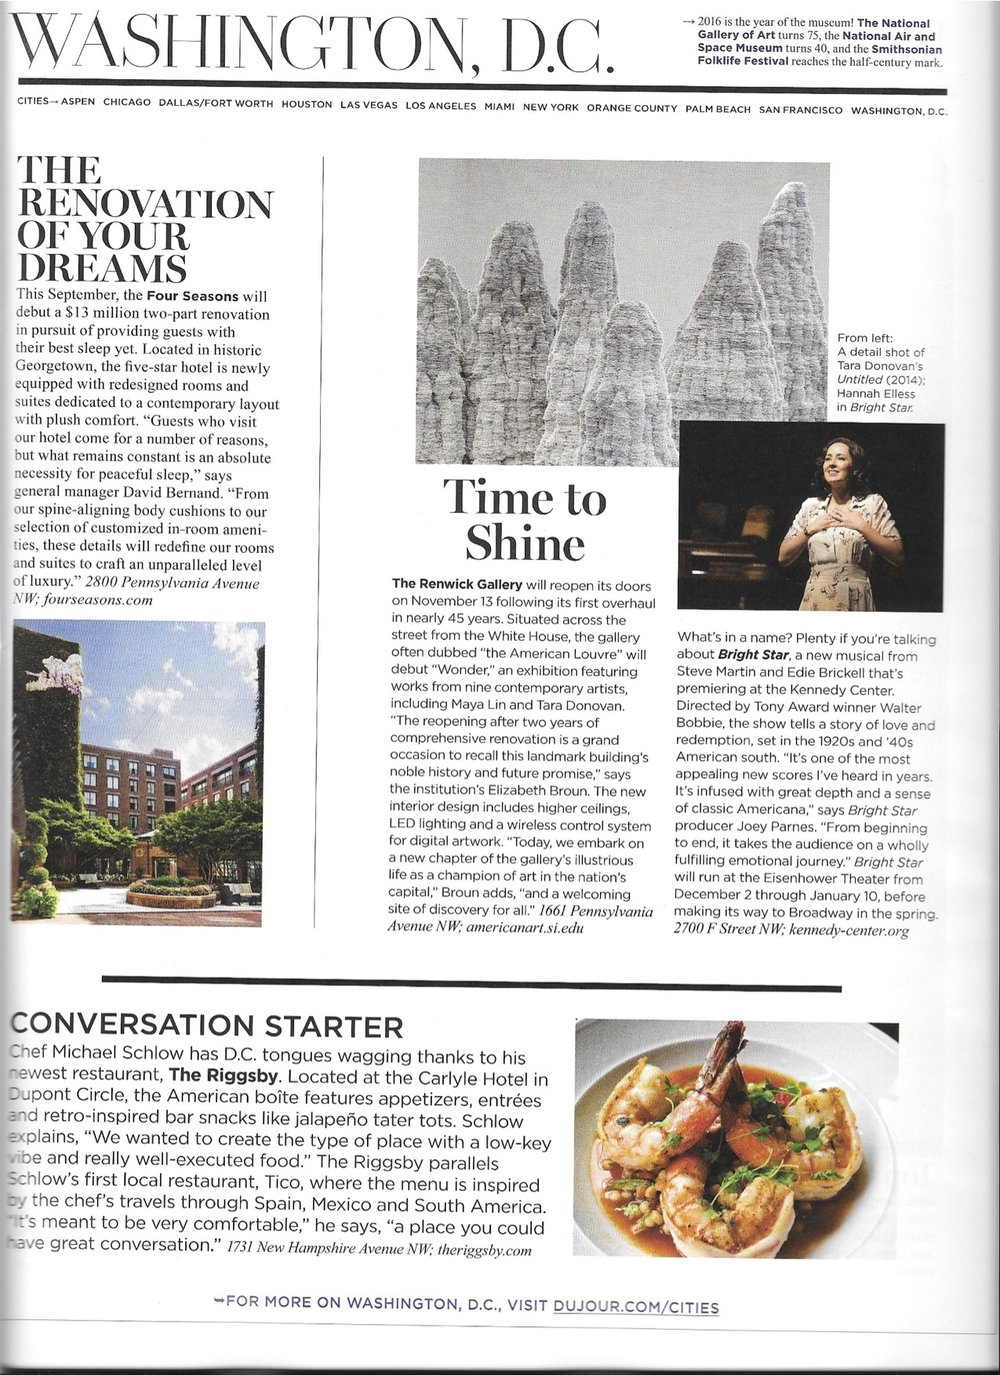 Contributed to winter 2015 issue - DuJour Cities / Washington, D.C.